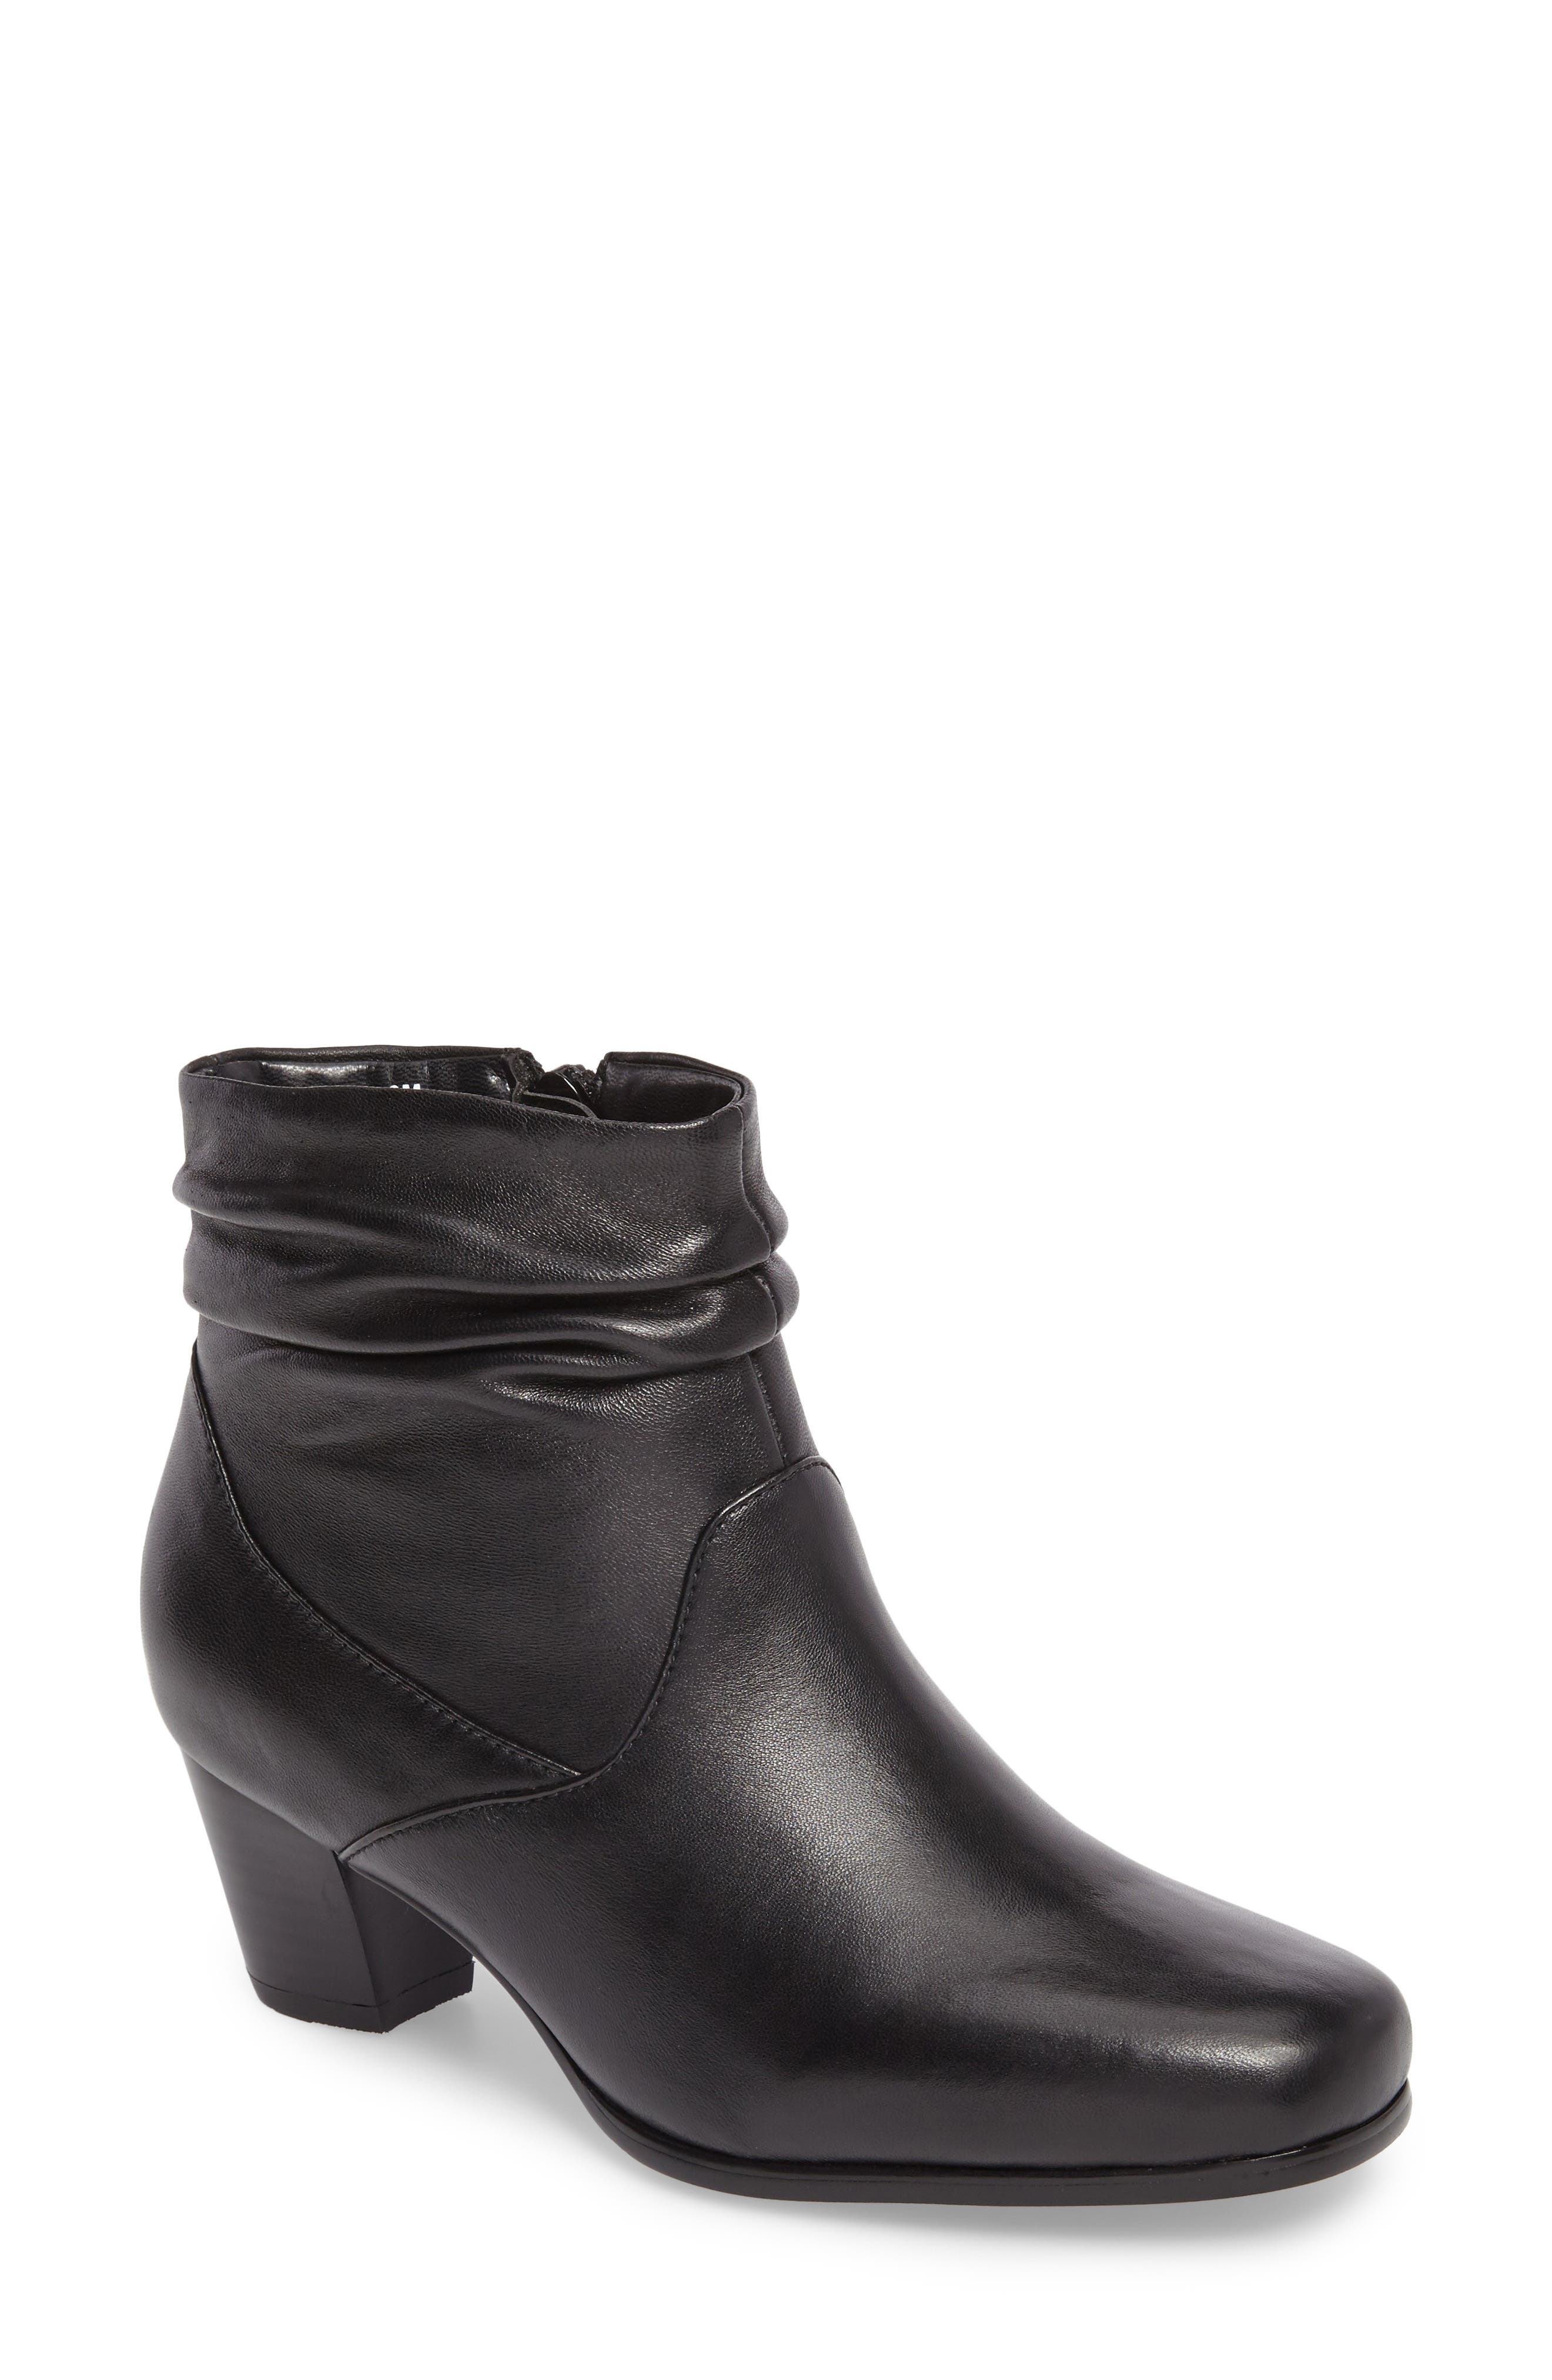 Shadown Bootie,                         Main,                         color, BLACK LEATHER